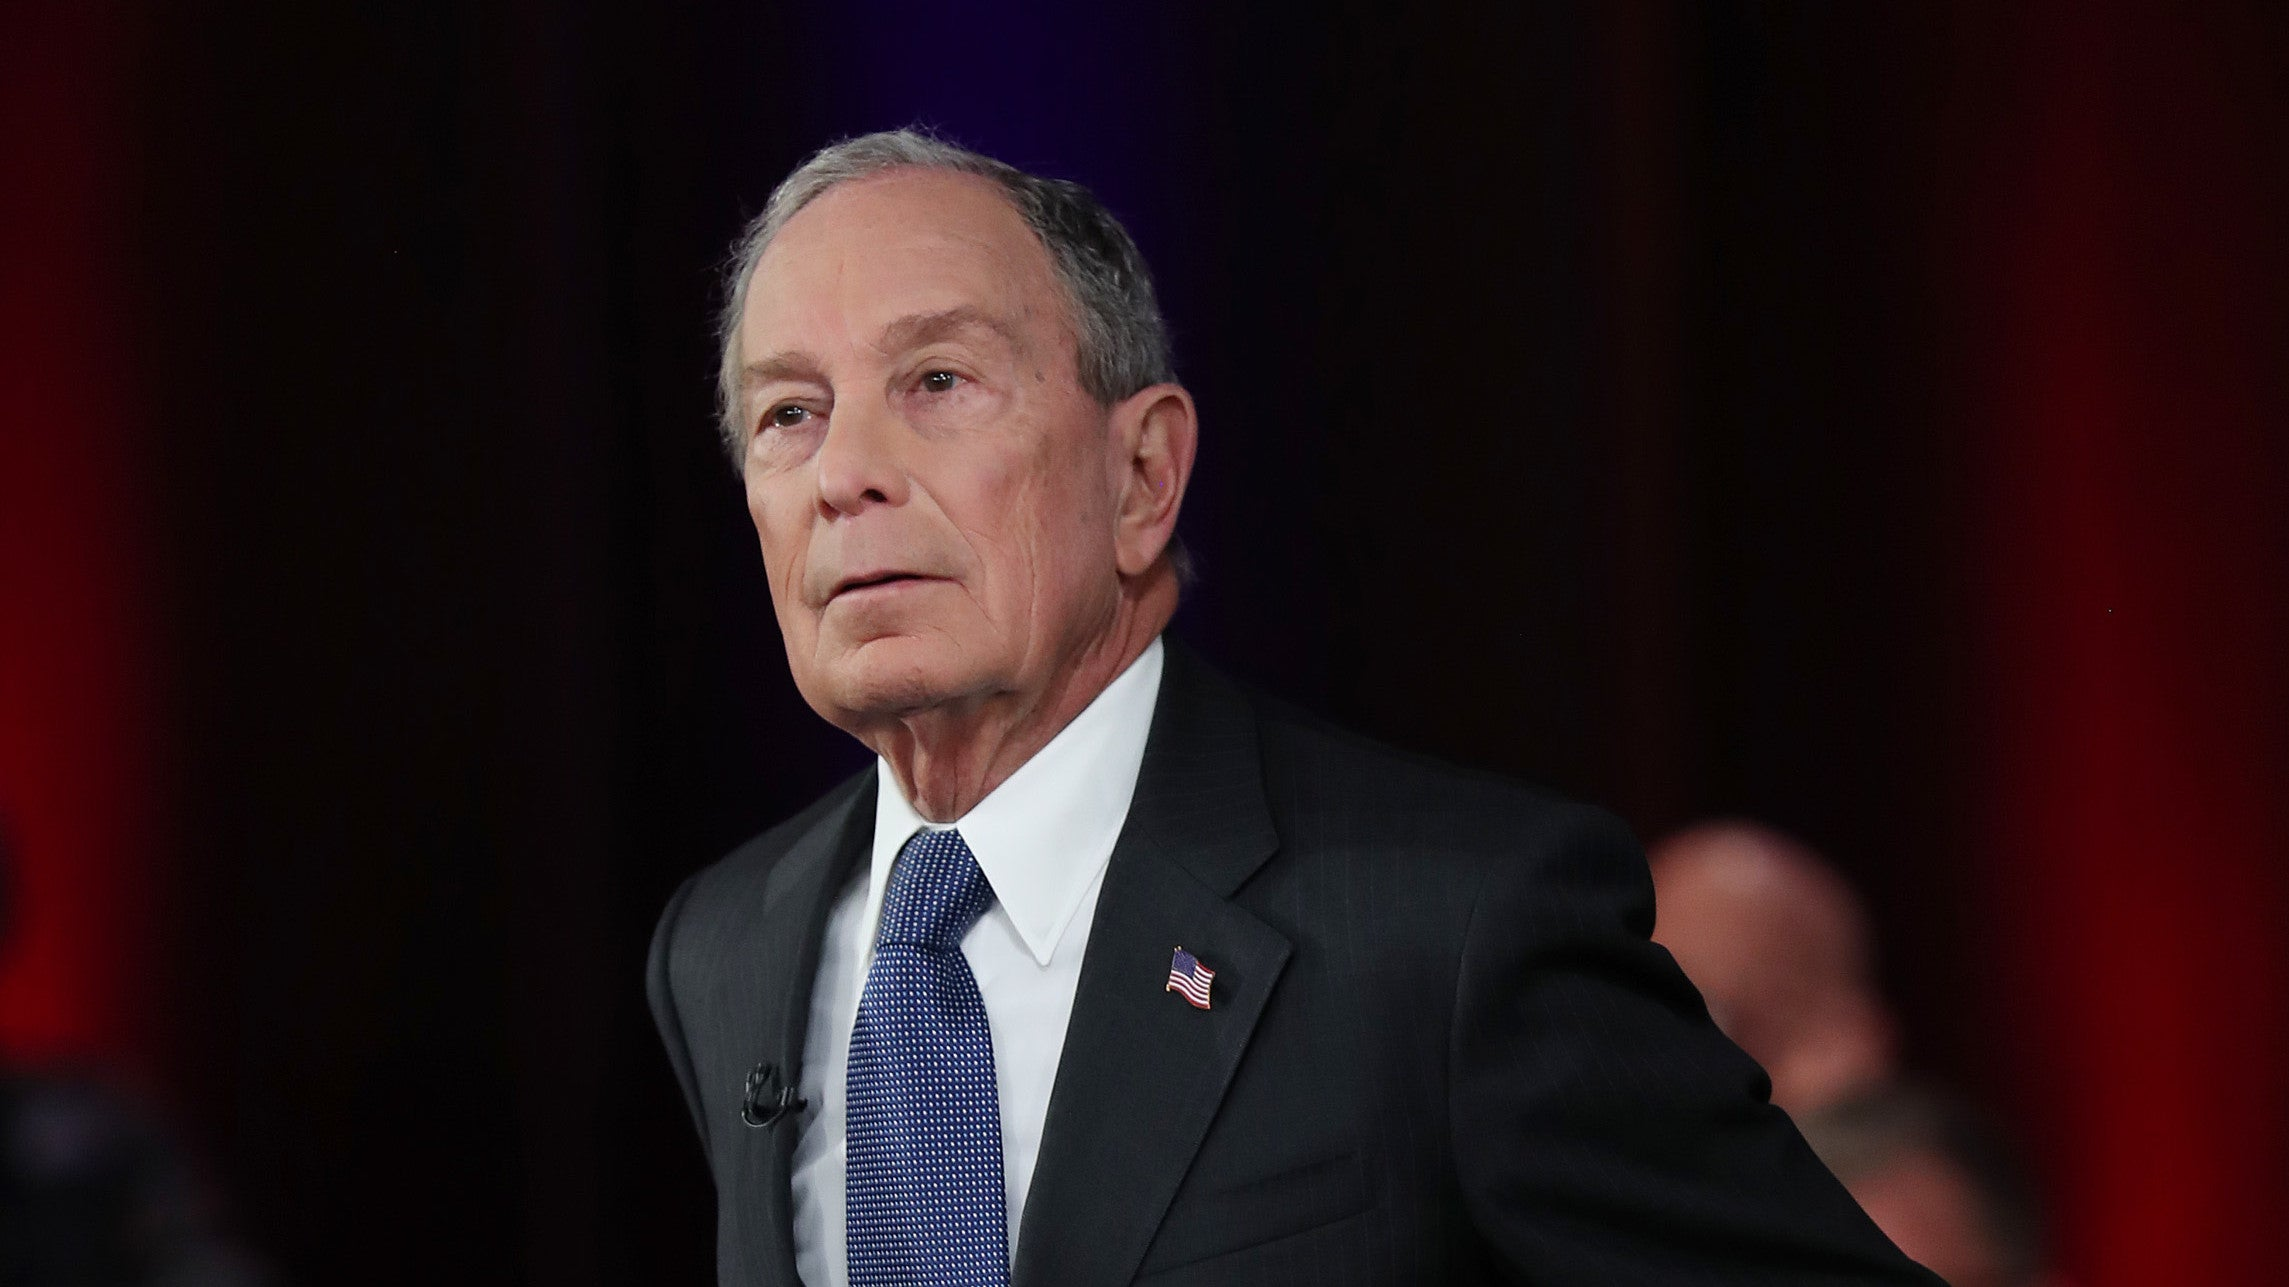 Report: Bloomberg Has Been Hiding Emails